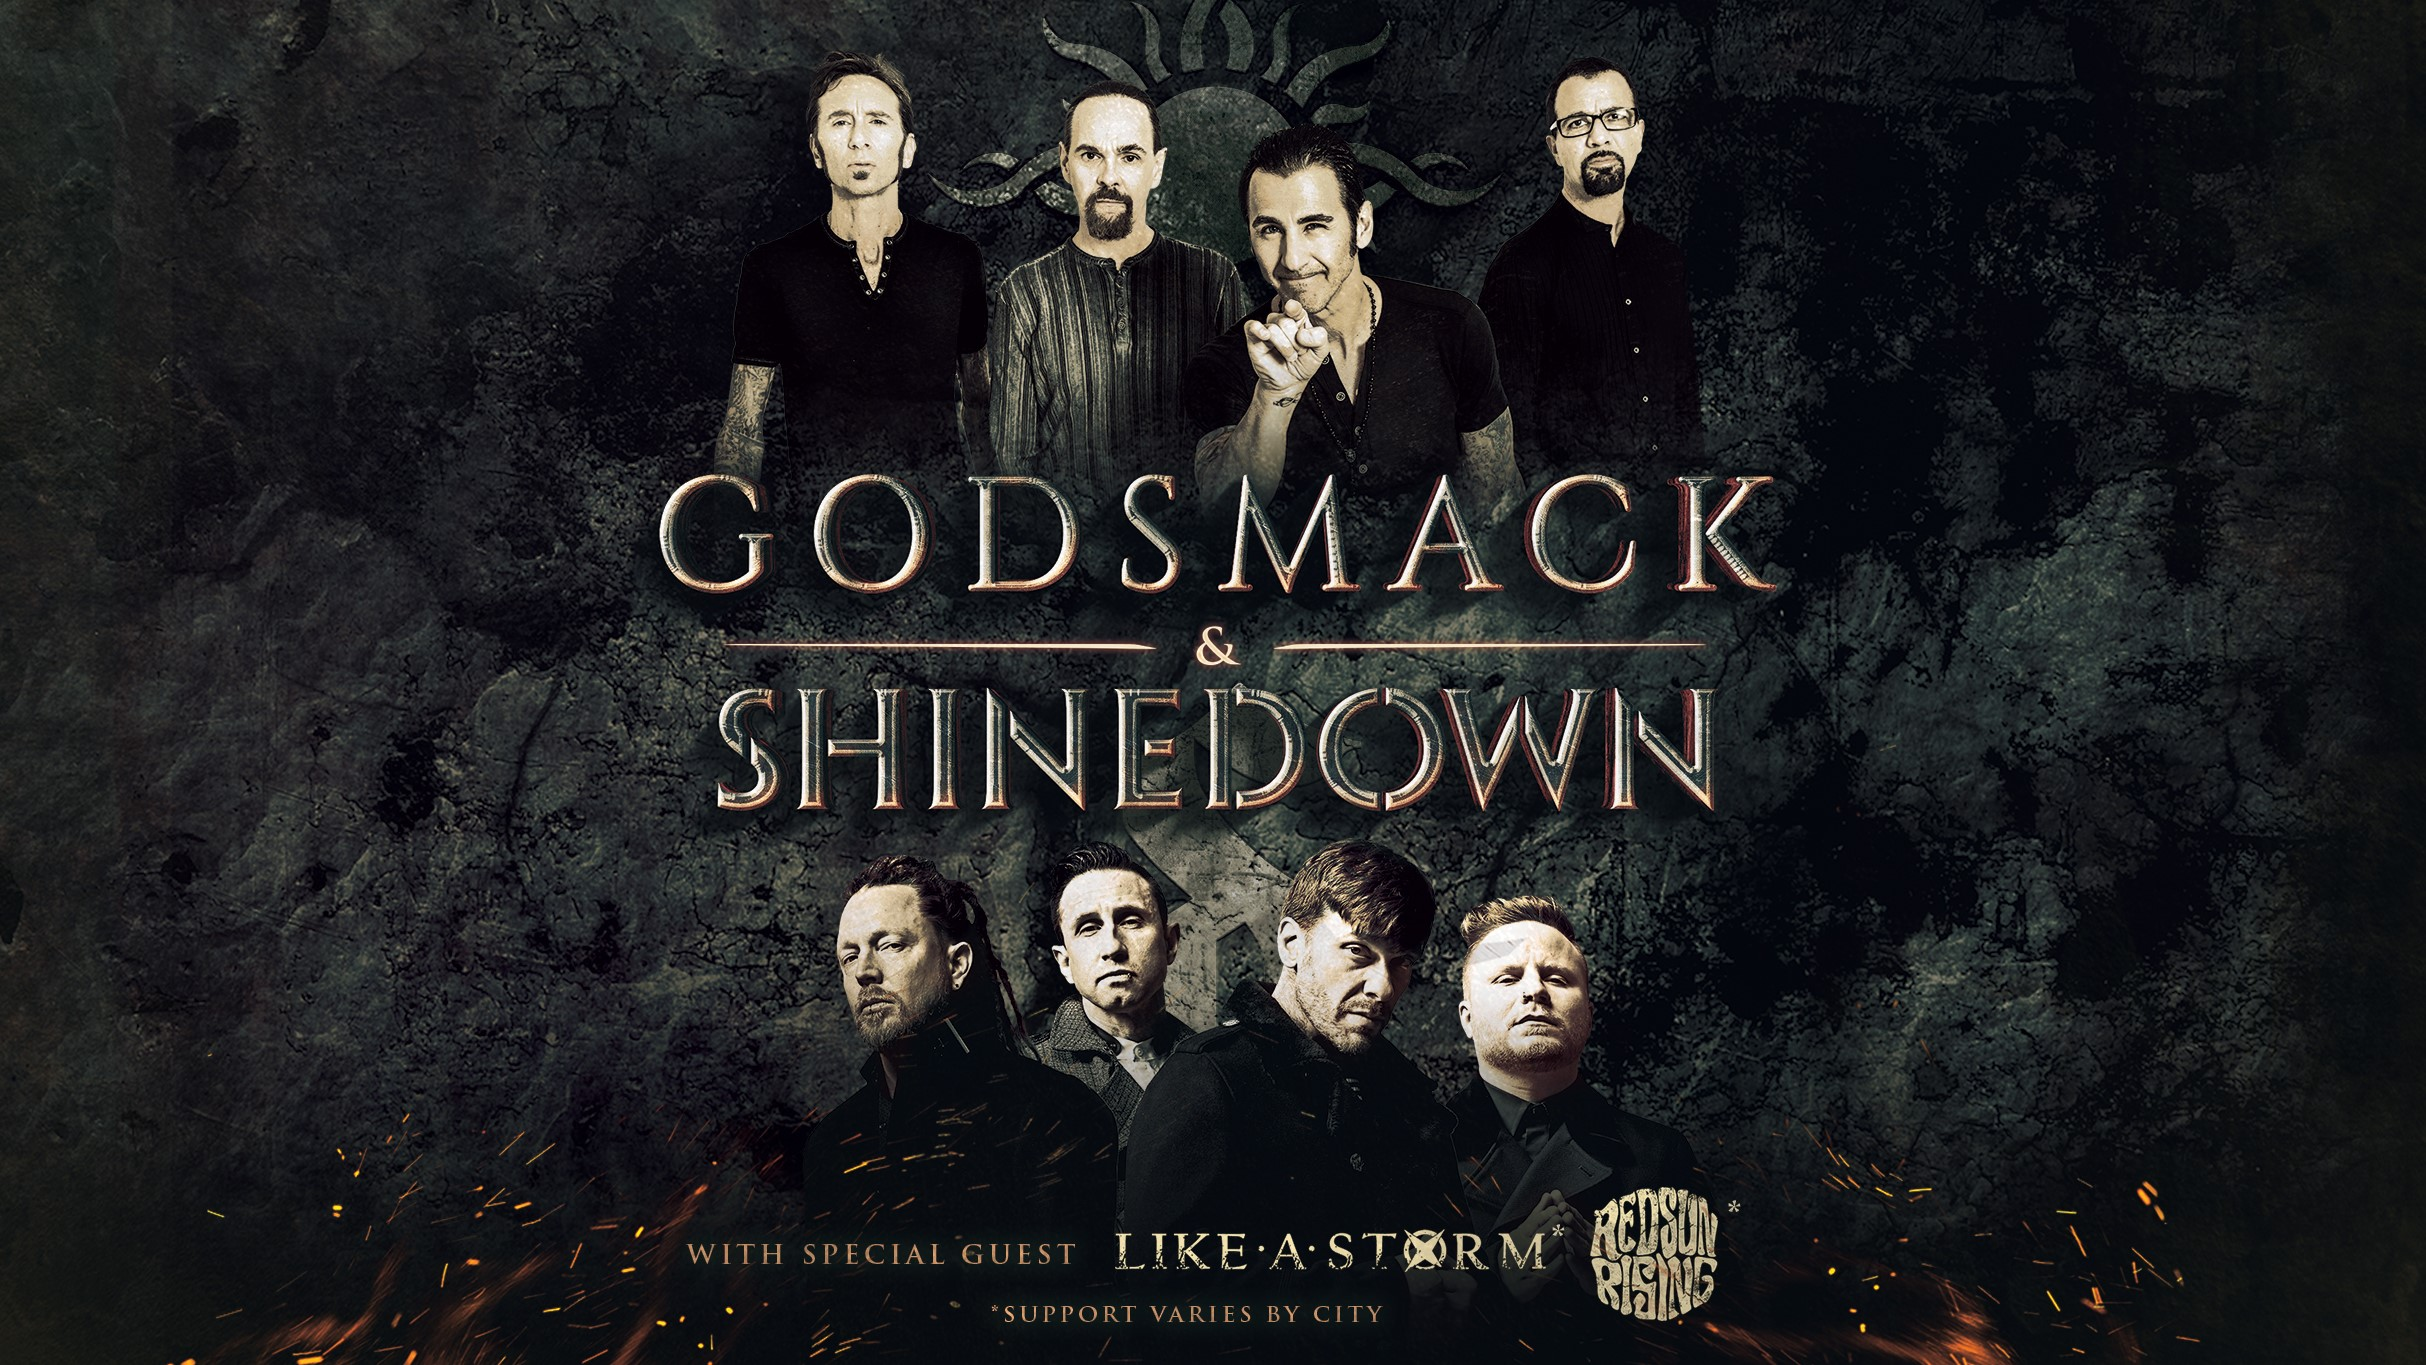 Live Nation Entertainment Godsmack And Shinedown Announce Co